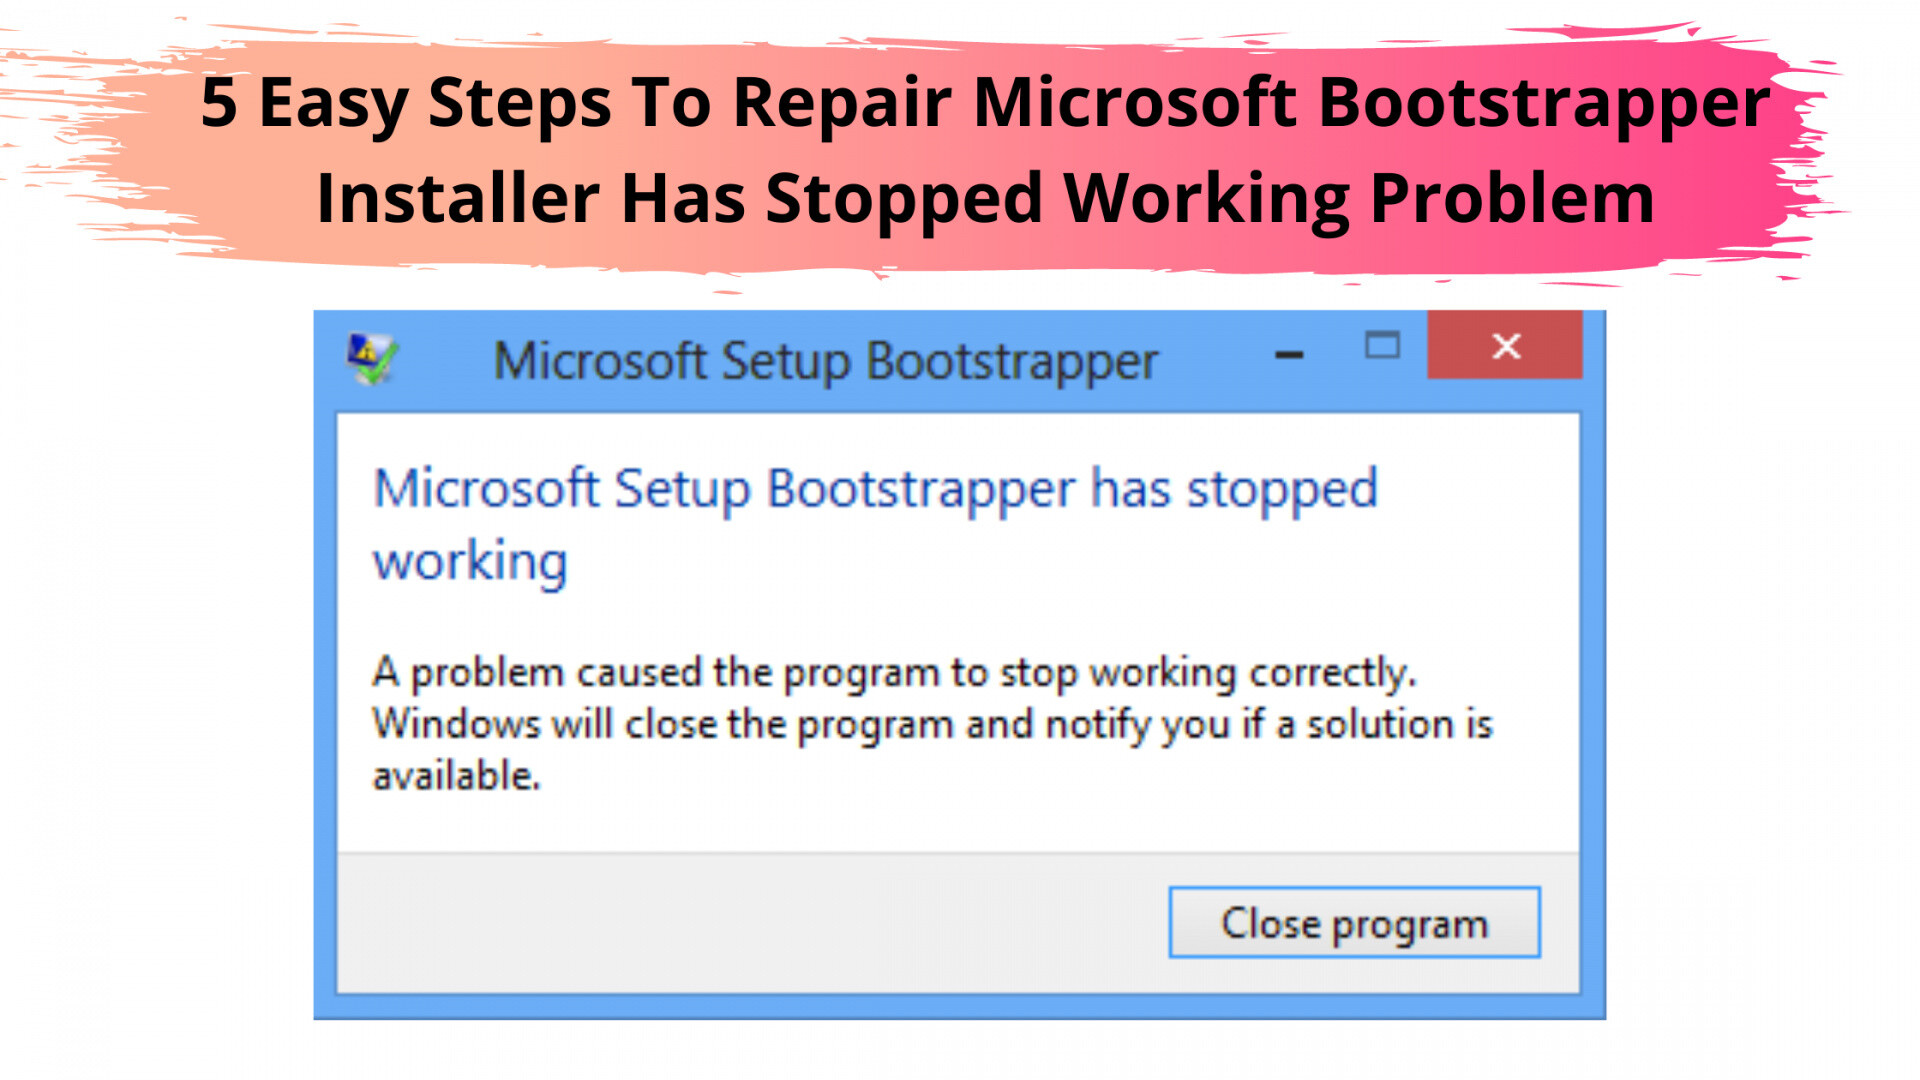 5 Easy Steps To Repair Microsoft Bootstrapper Installer Has Stopped Working Problem